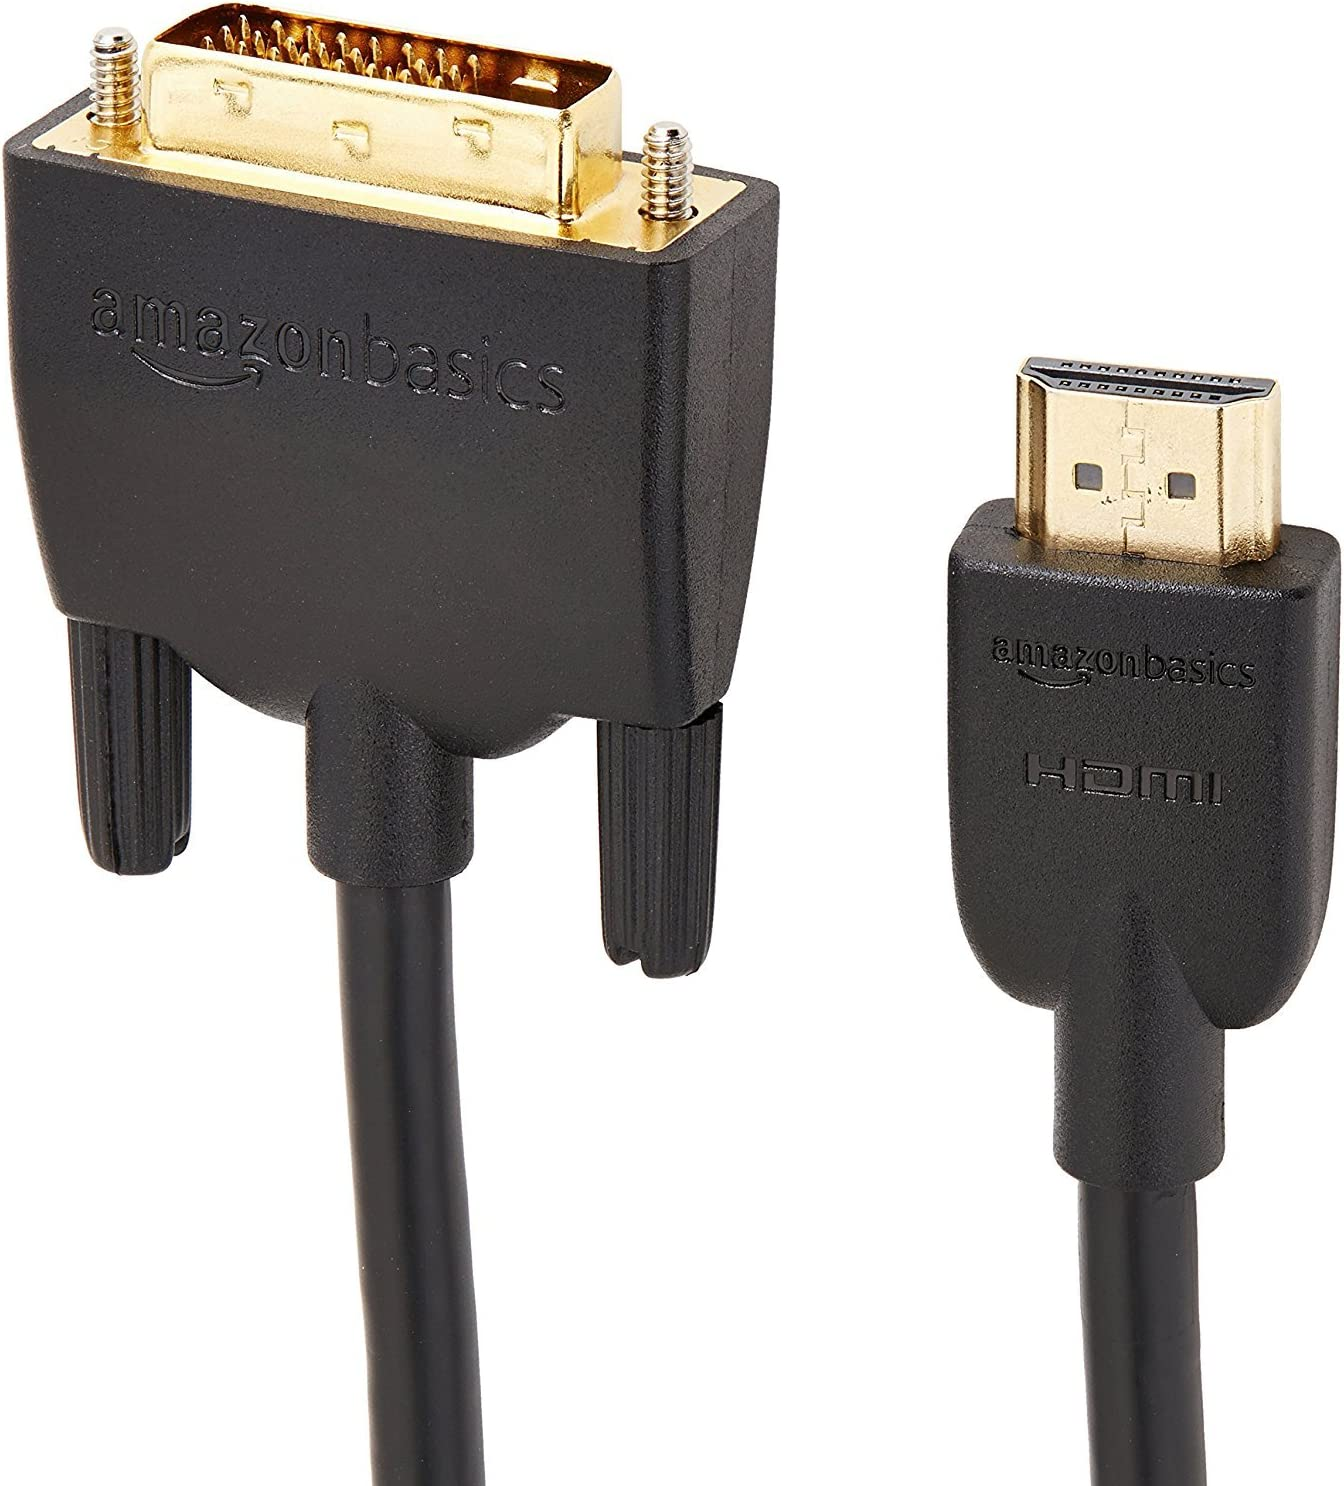 Basics HDMI to DVI Adapter Cable, Black, 6 Feet, 1-Pack: Home Audio & Theater